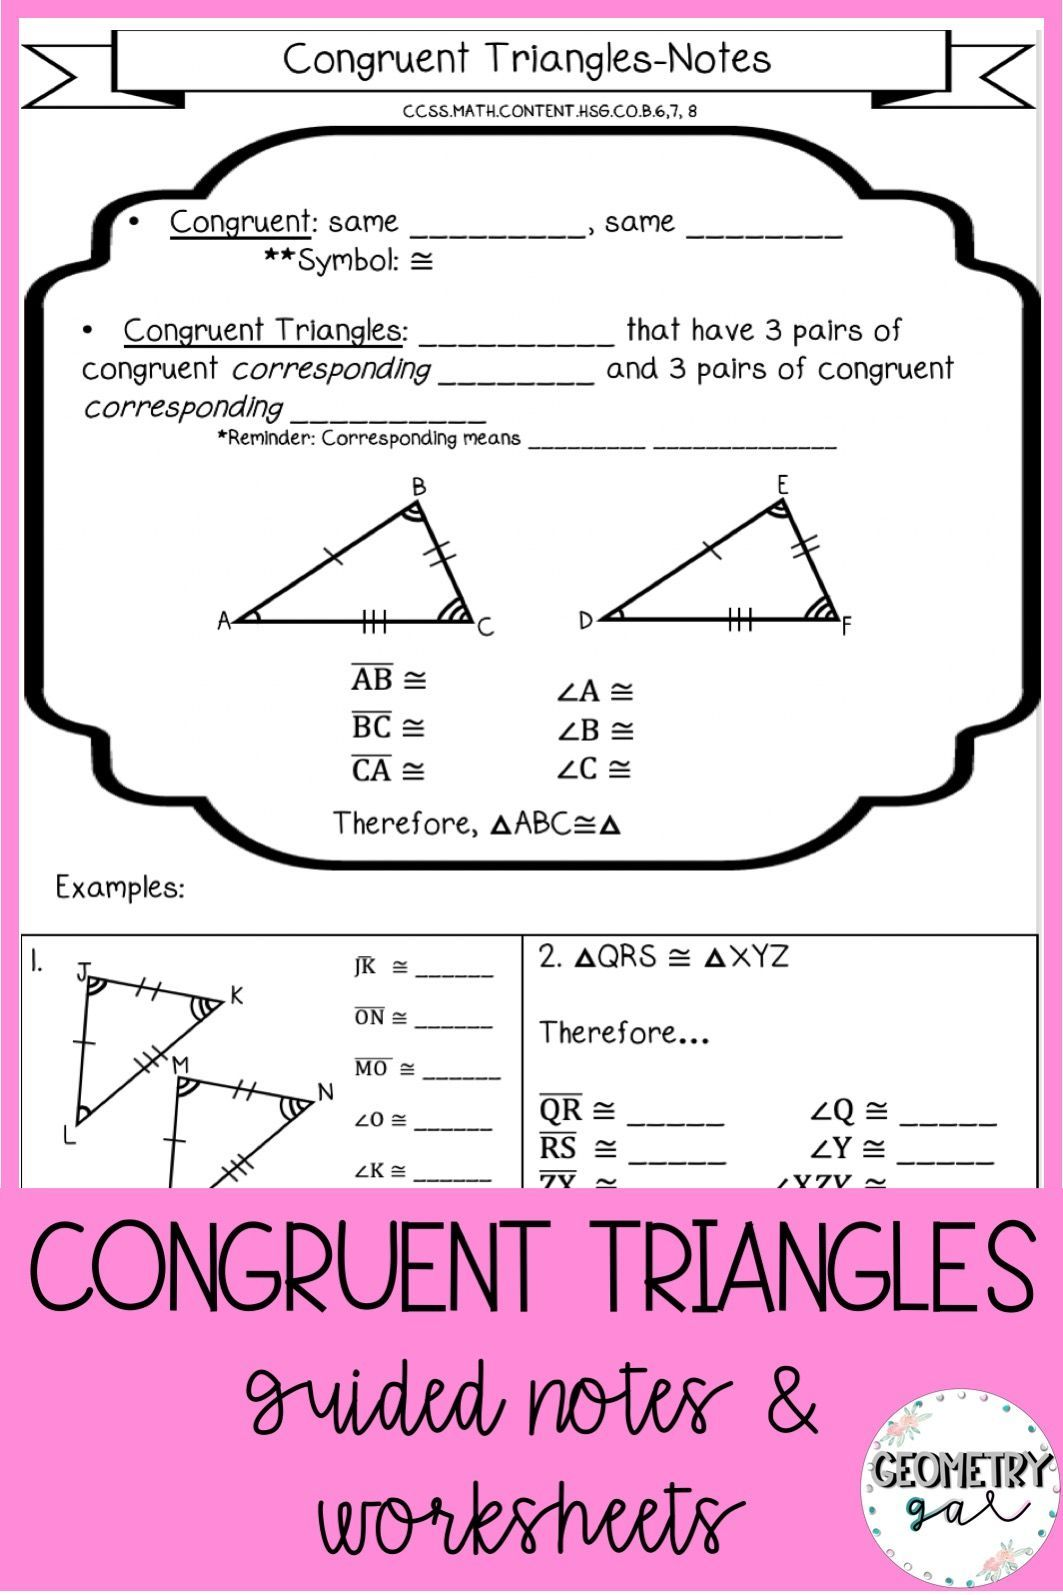 Congruent Triangles Notes And Worksheets